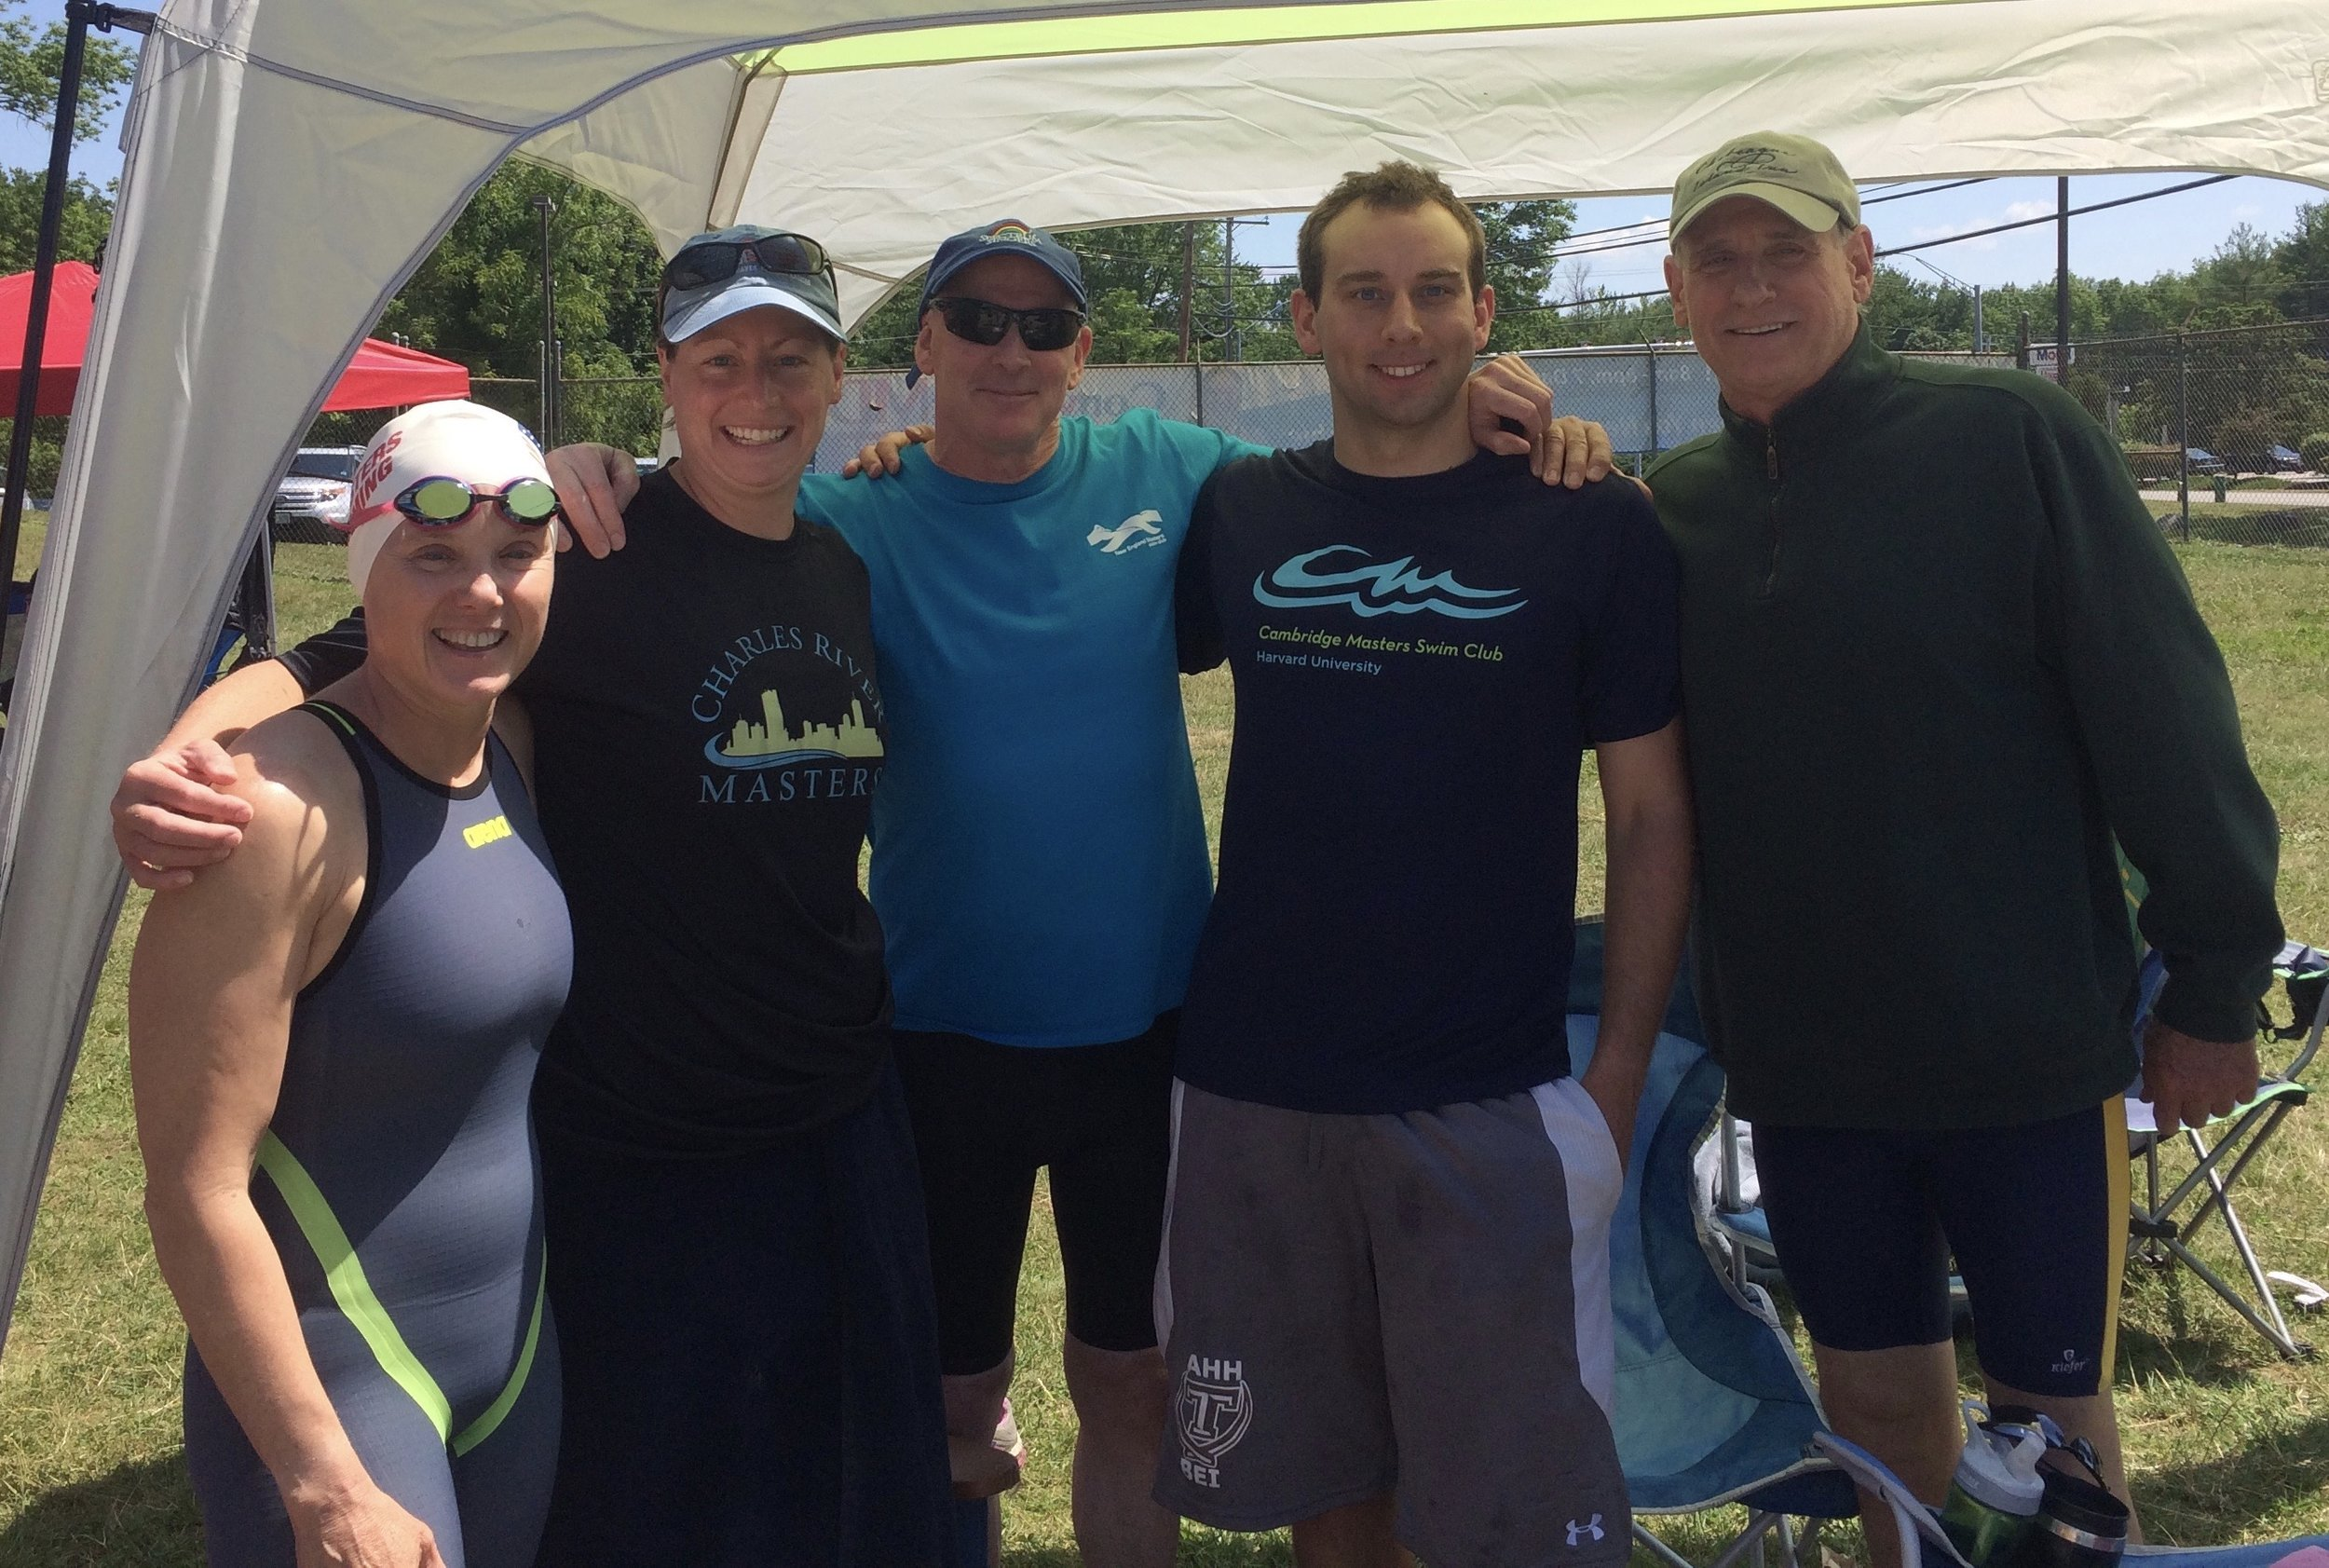 Sue Jensen, Jennifer Downing, Dan Epstein, Matt Wiens, and Fred Schlicher represented Charles River Masters